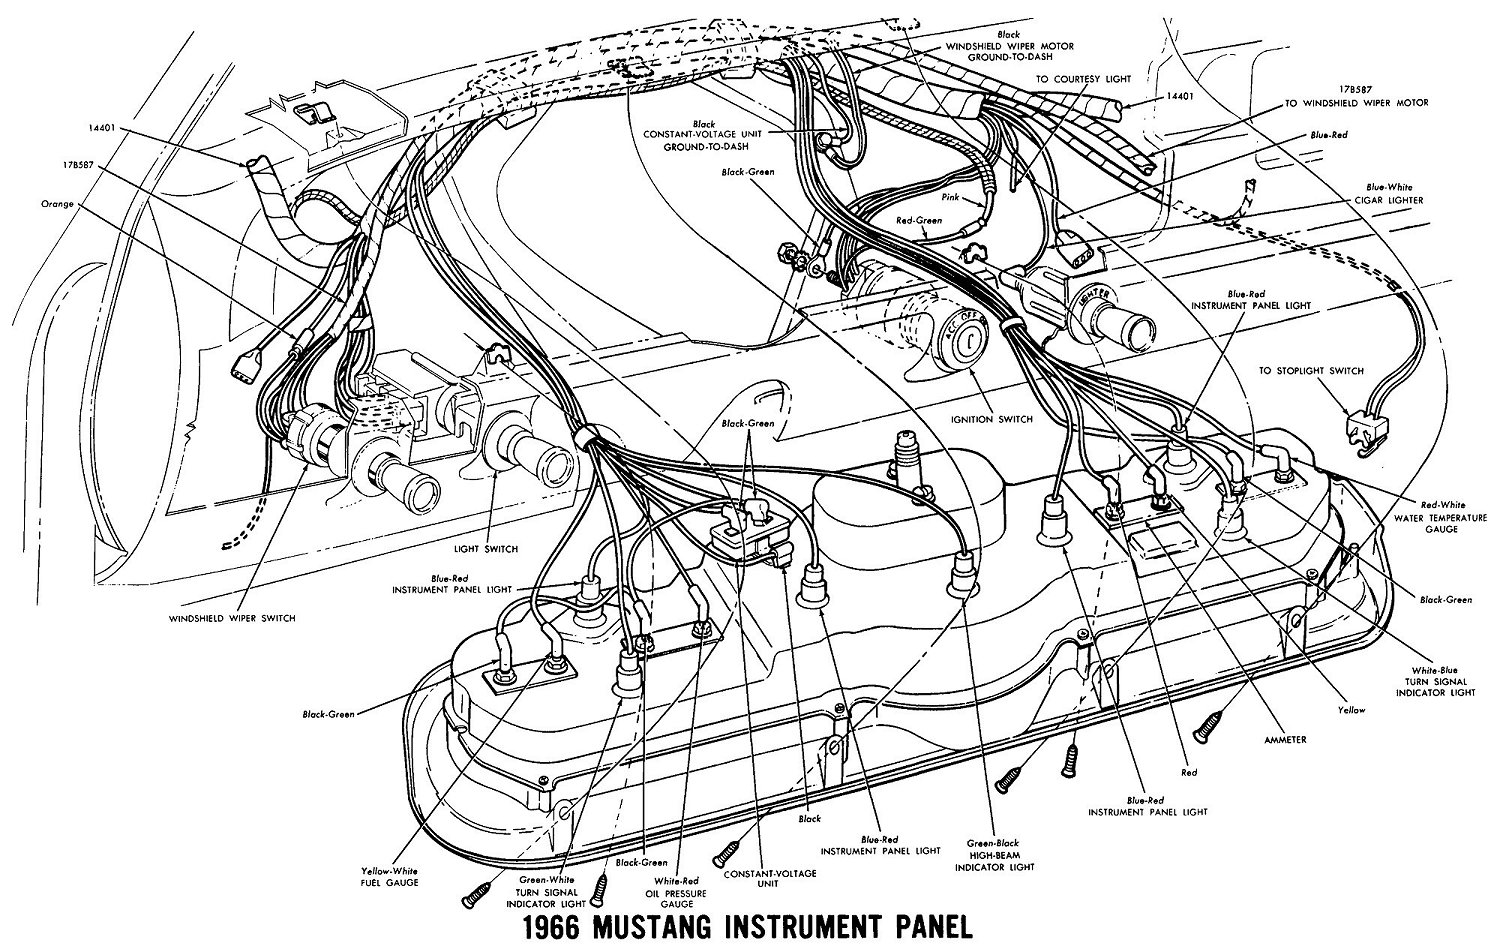 1966 Mustang Wiring Diagrams on 1970 mustang mach 1 wiring diagram